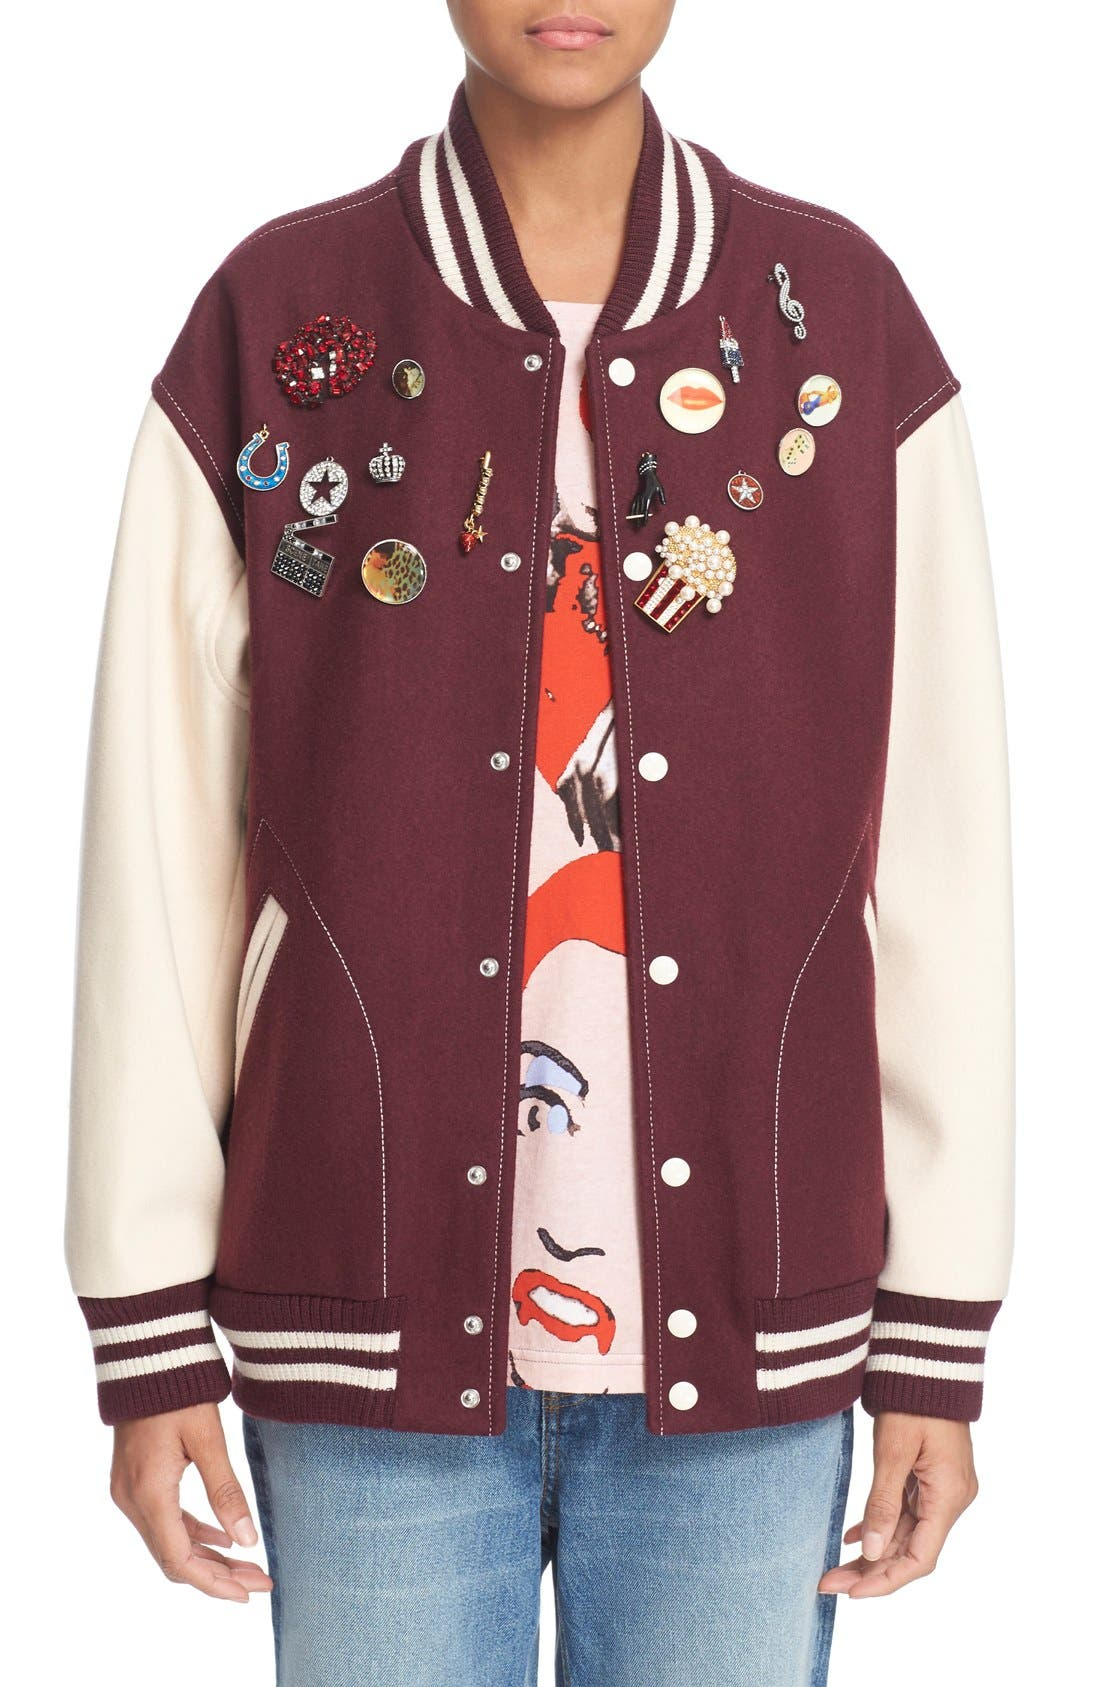 Main Image - MARC JACOBS Embellished Varsity Jacket